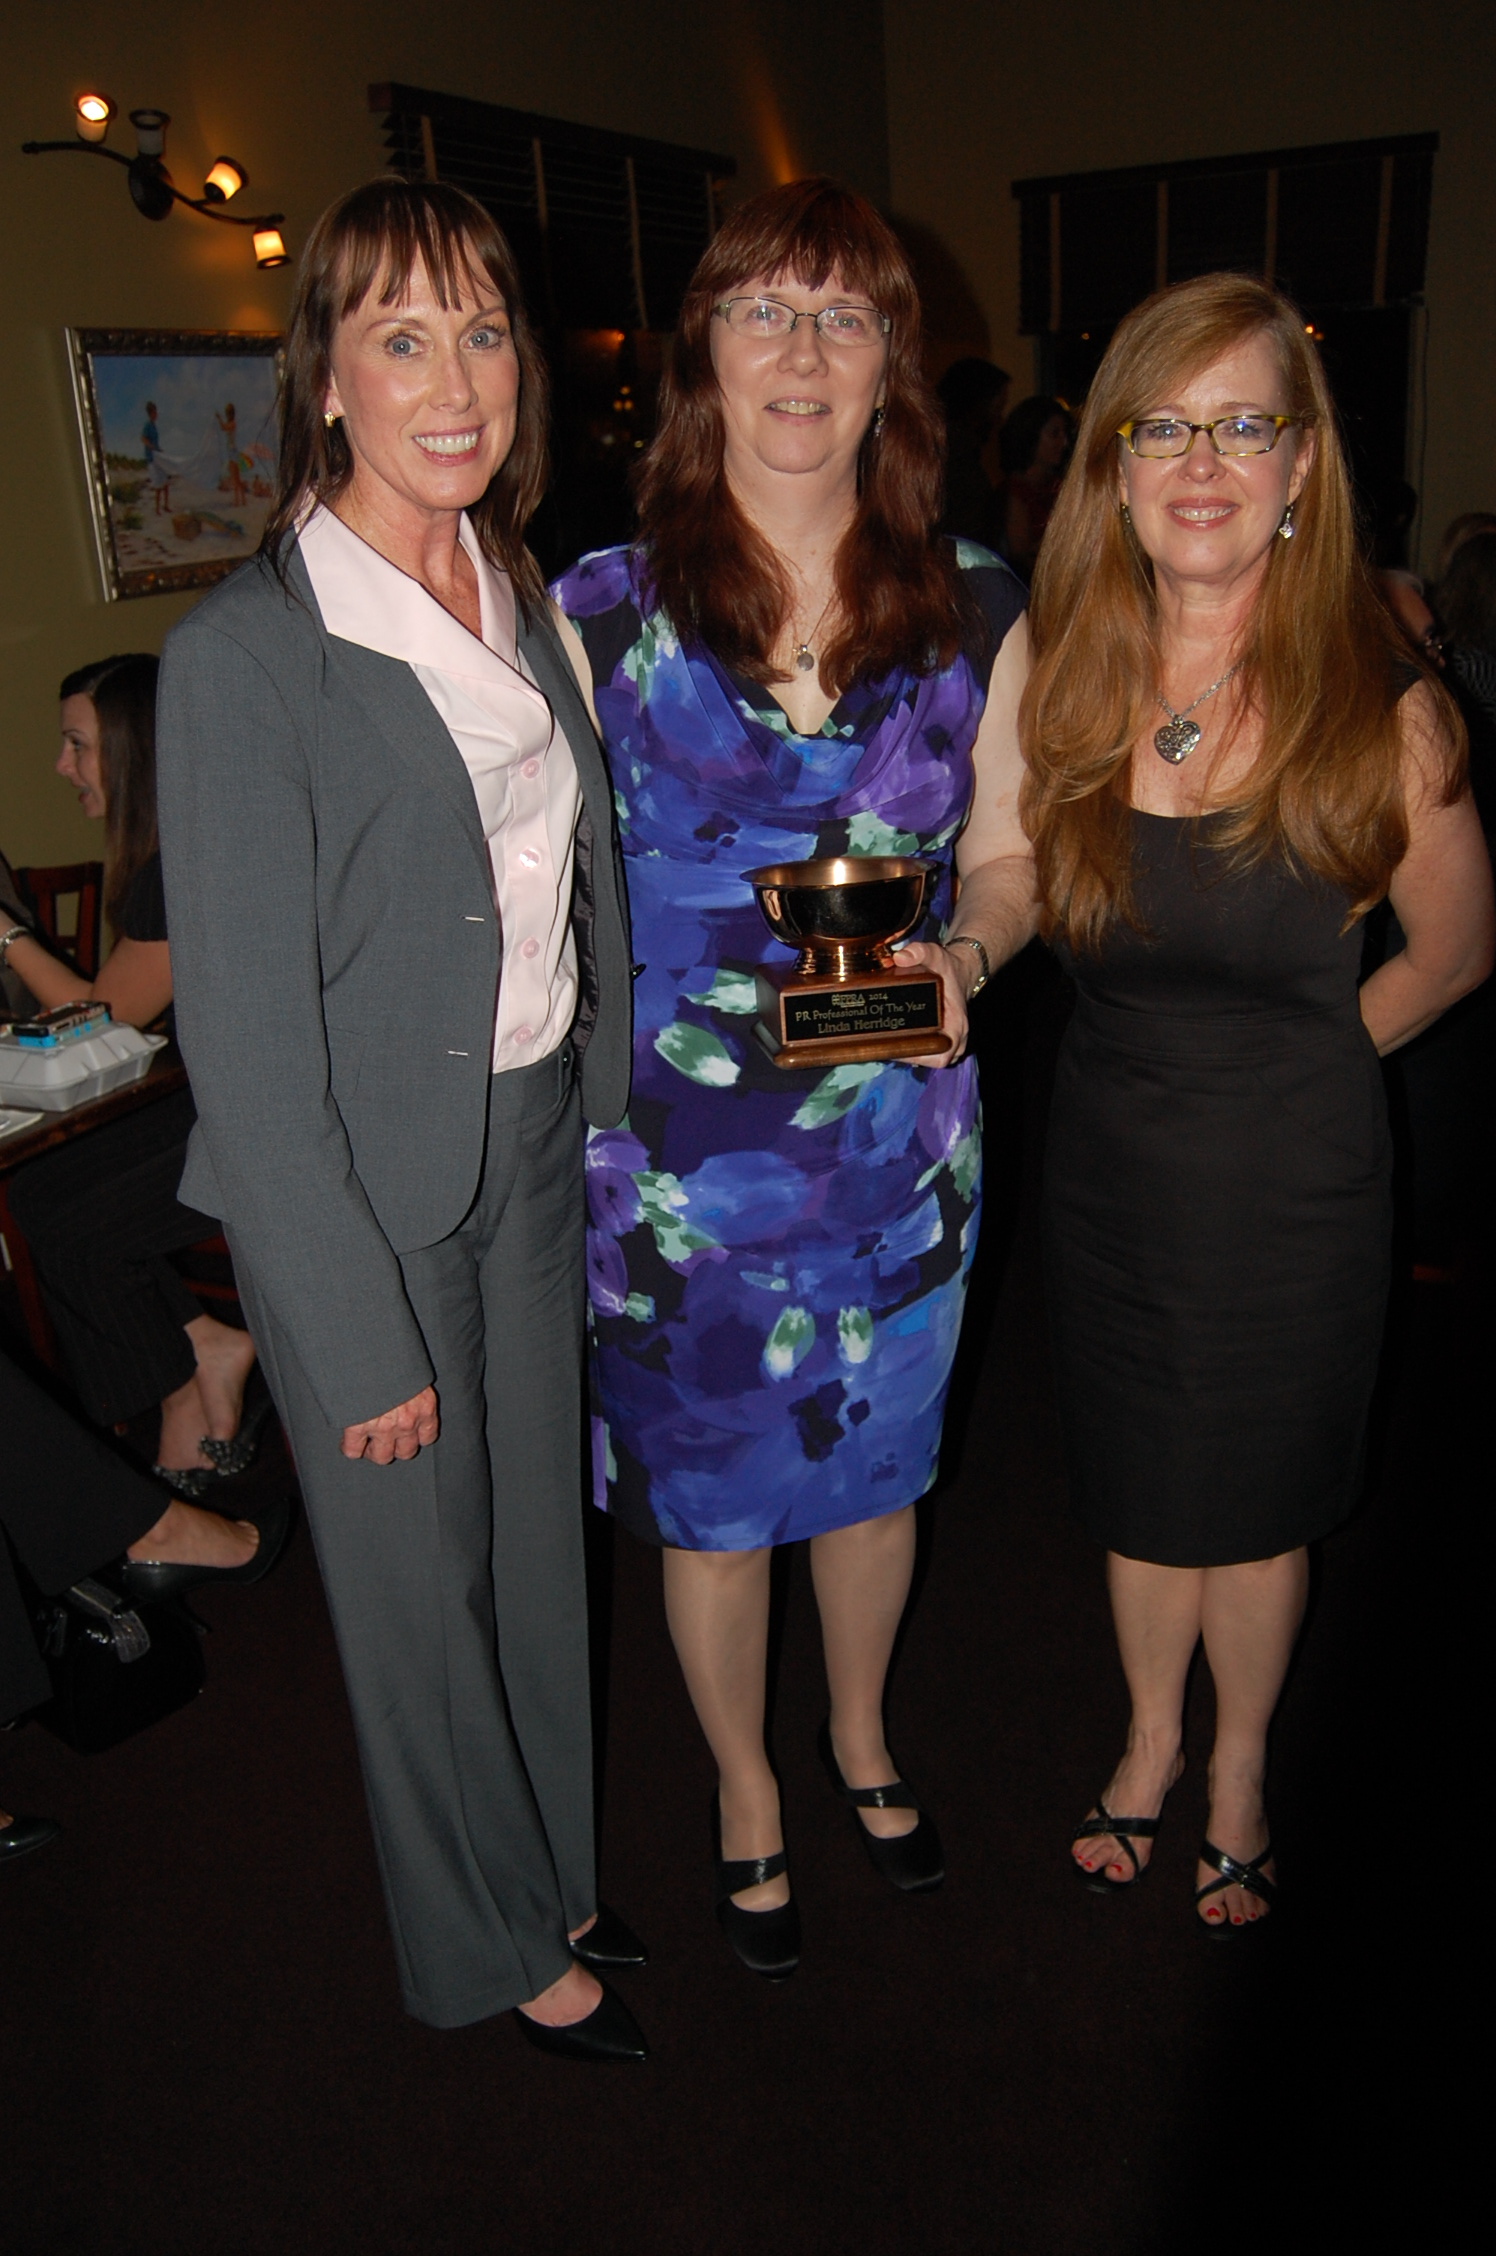 Suzanne Sparling, APR, CPRC, Linda Herridge - PR Professional of the Year and Lisa Malone, APR, CPRC